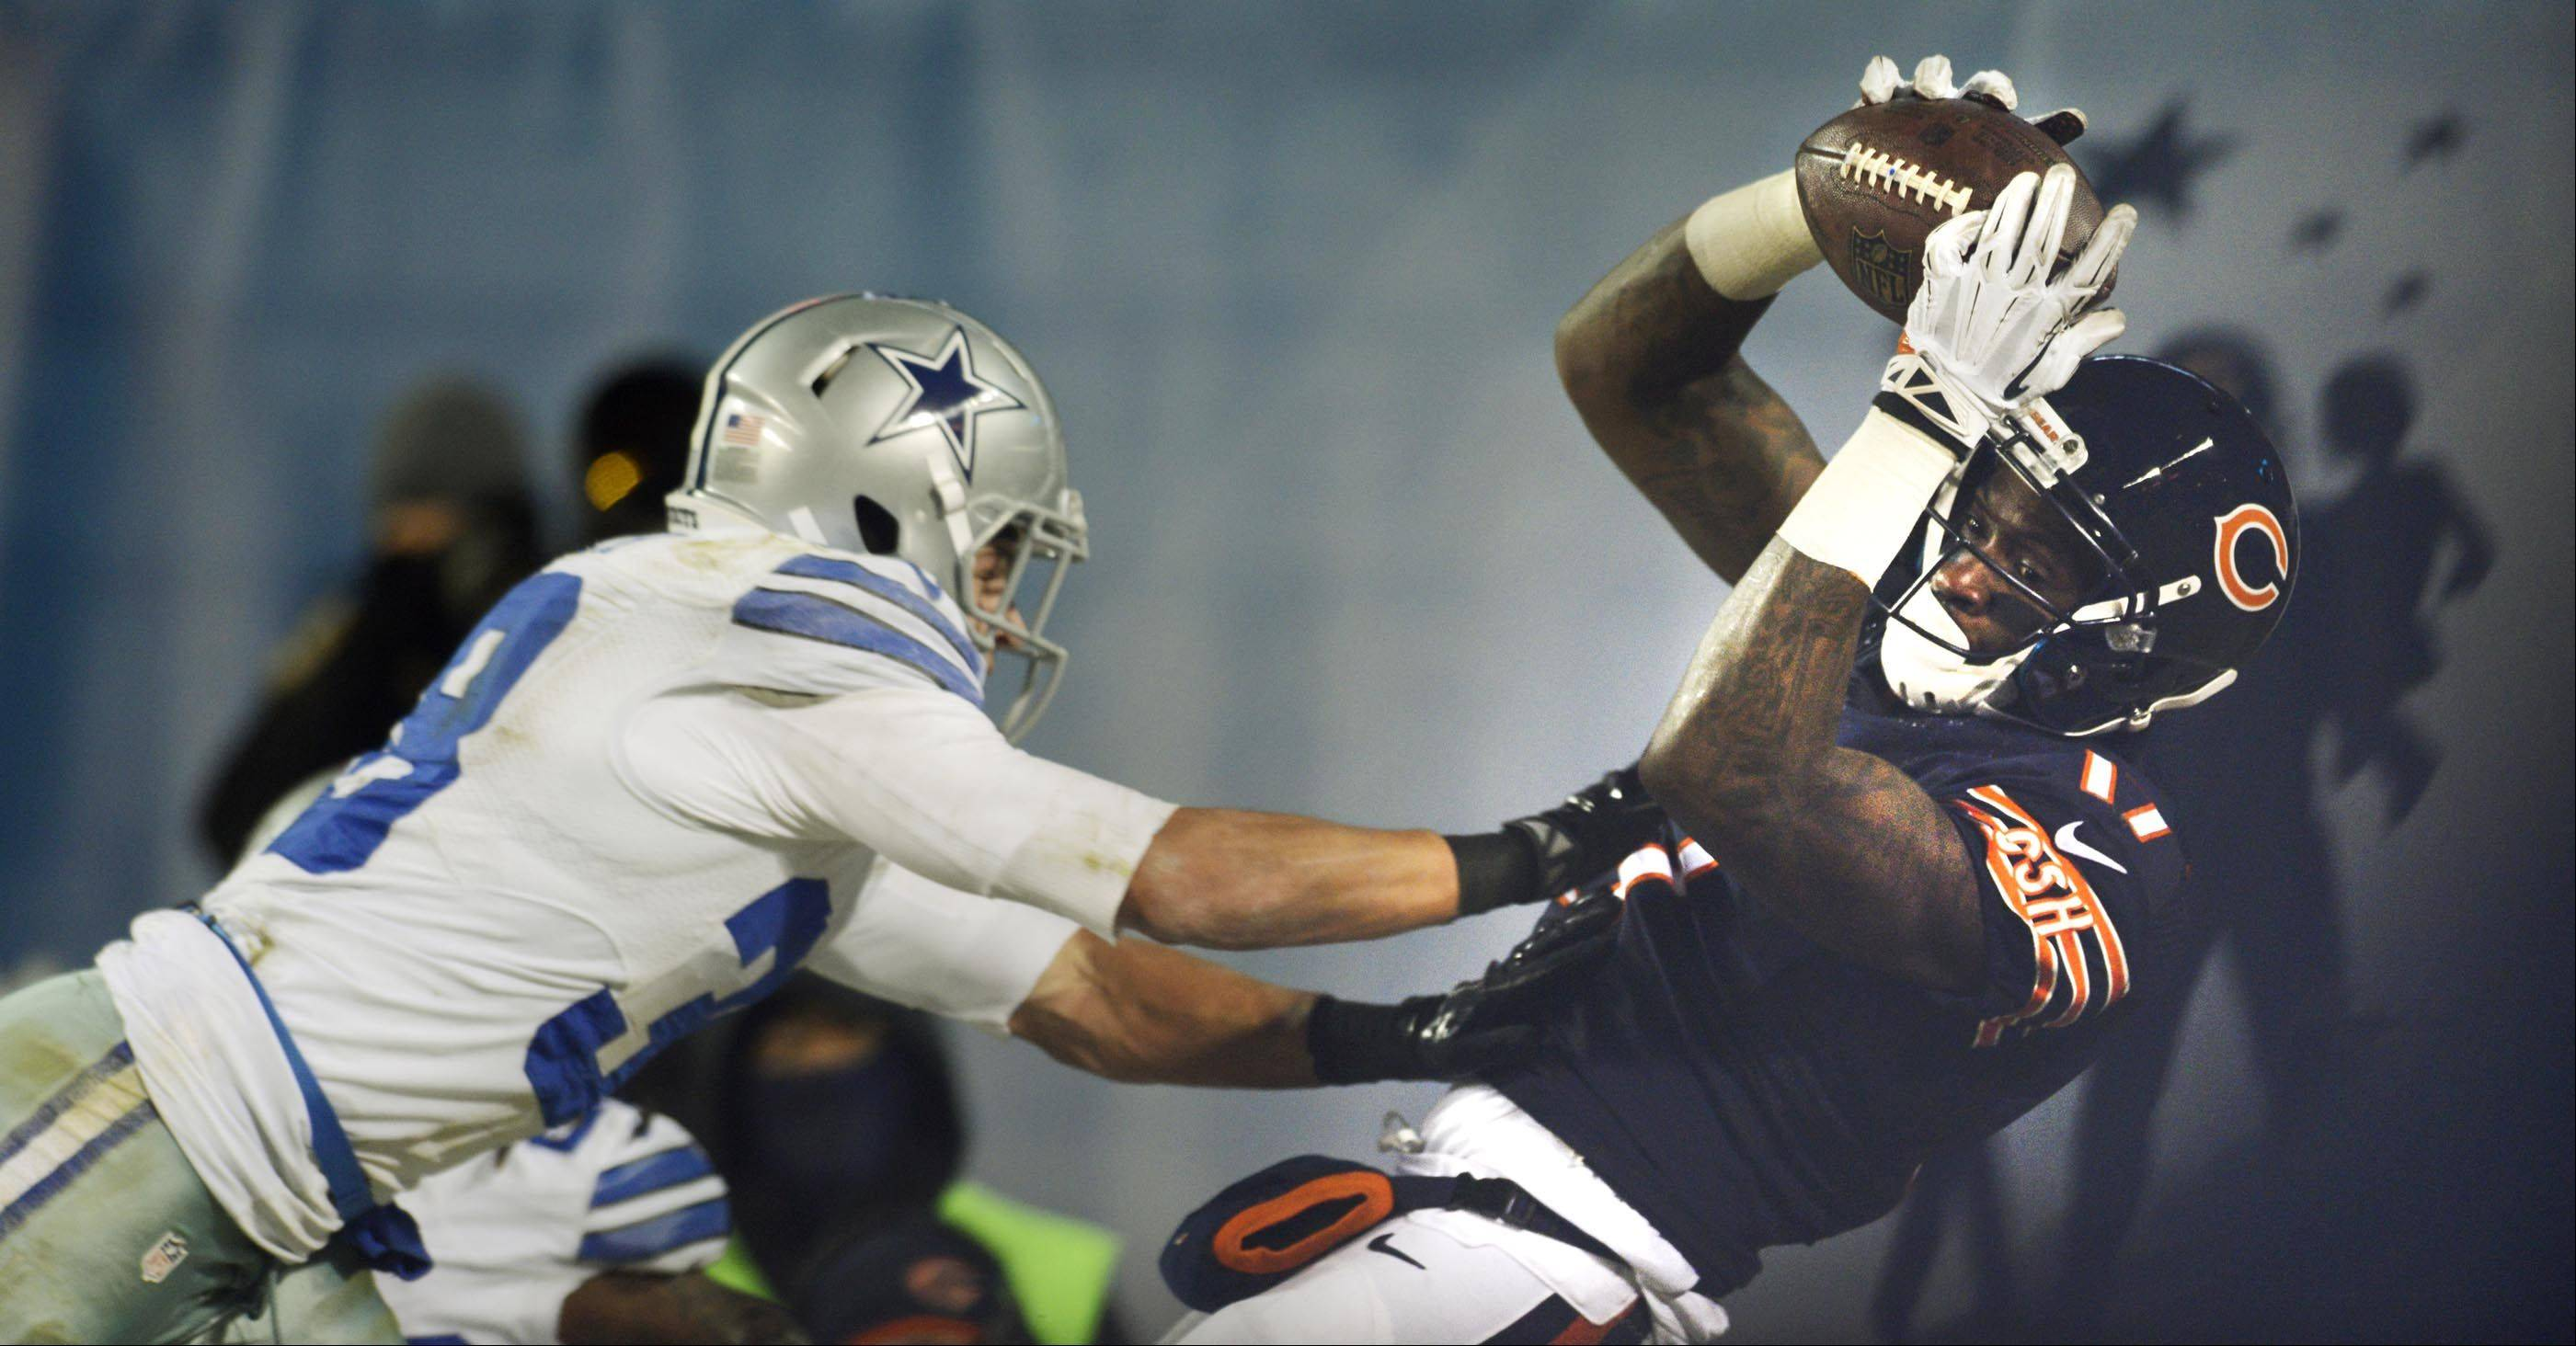 Chicago Bears wide receiver Alshon Jeffery keeps his feet inbounds as he hauls in a late first-half touchdown pass as Dallas Cowboys strong safety Jeff Heath covers.